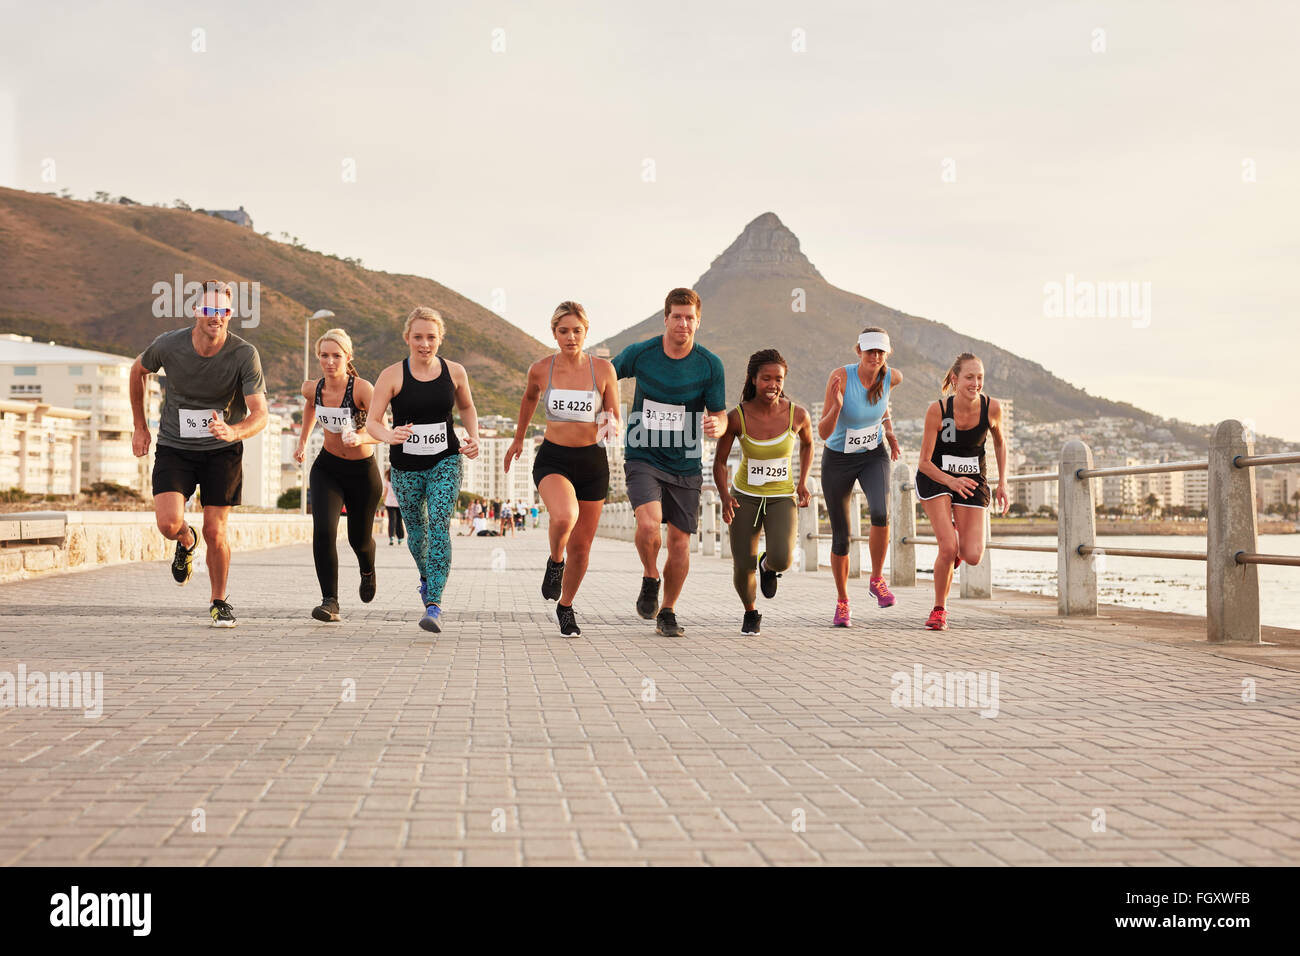 Diverse group of young people running along a seaside promenade. Fit young runners training outdoors by the seaside. - Stock Image